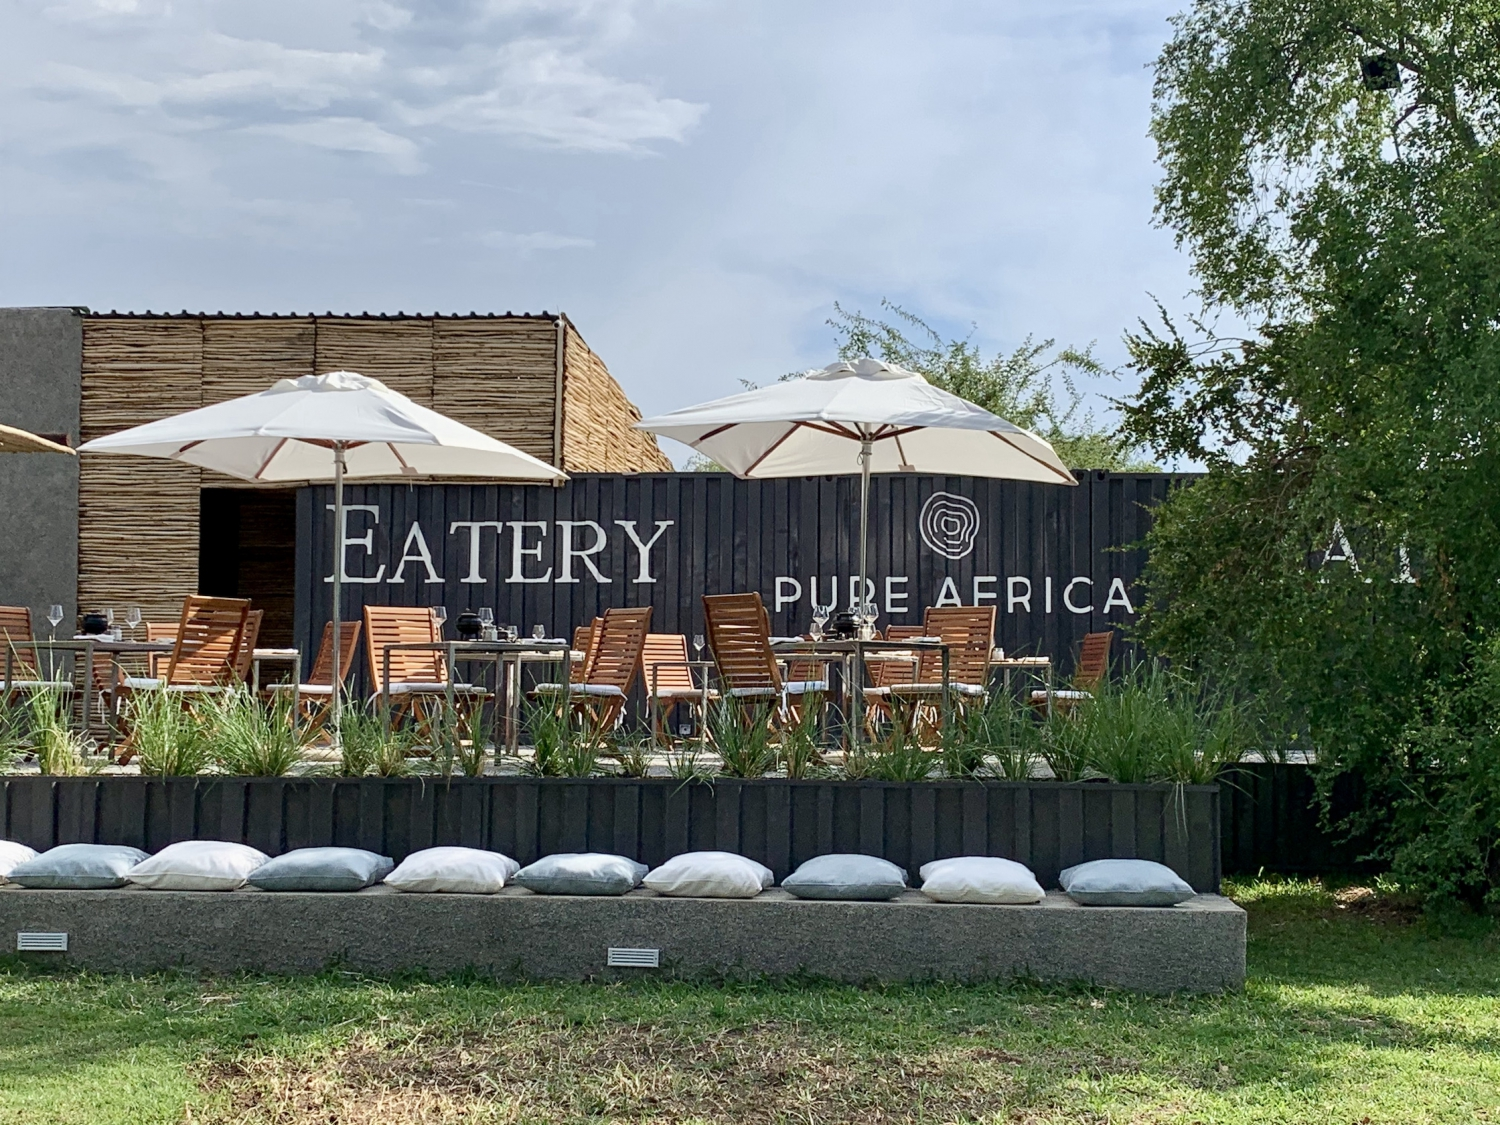 Pure Africa - The Eatery Dining Experience